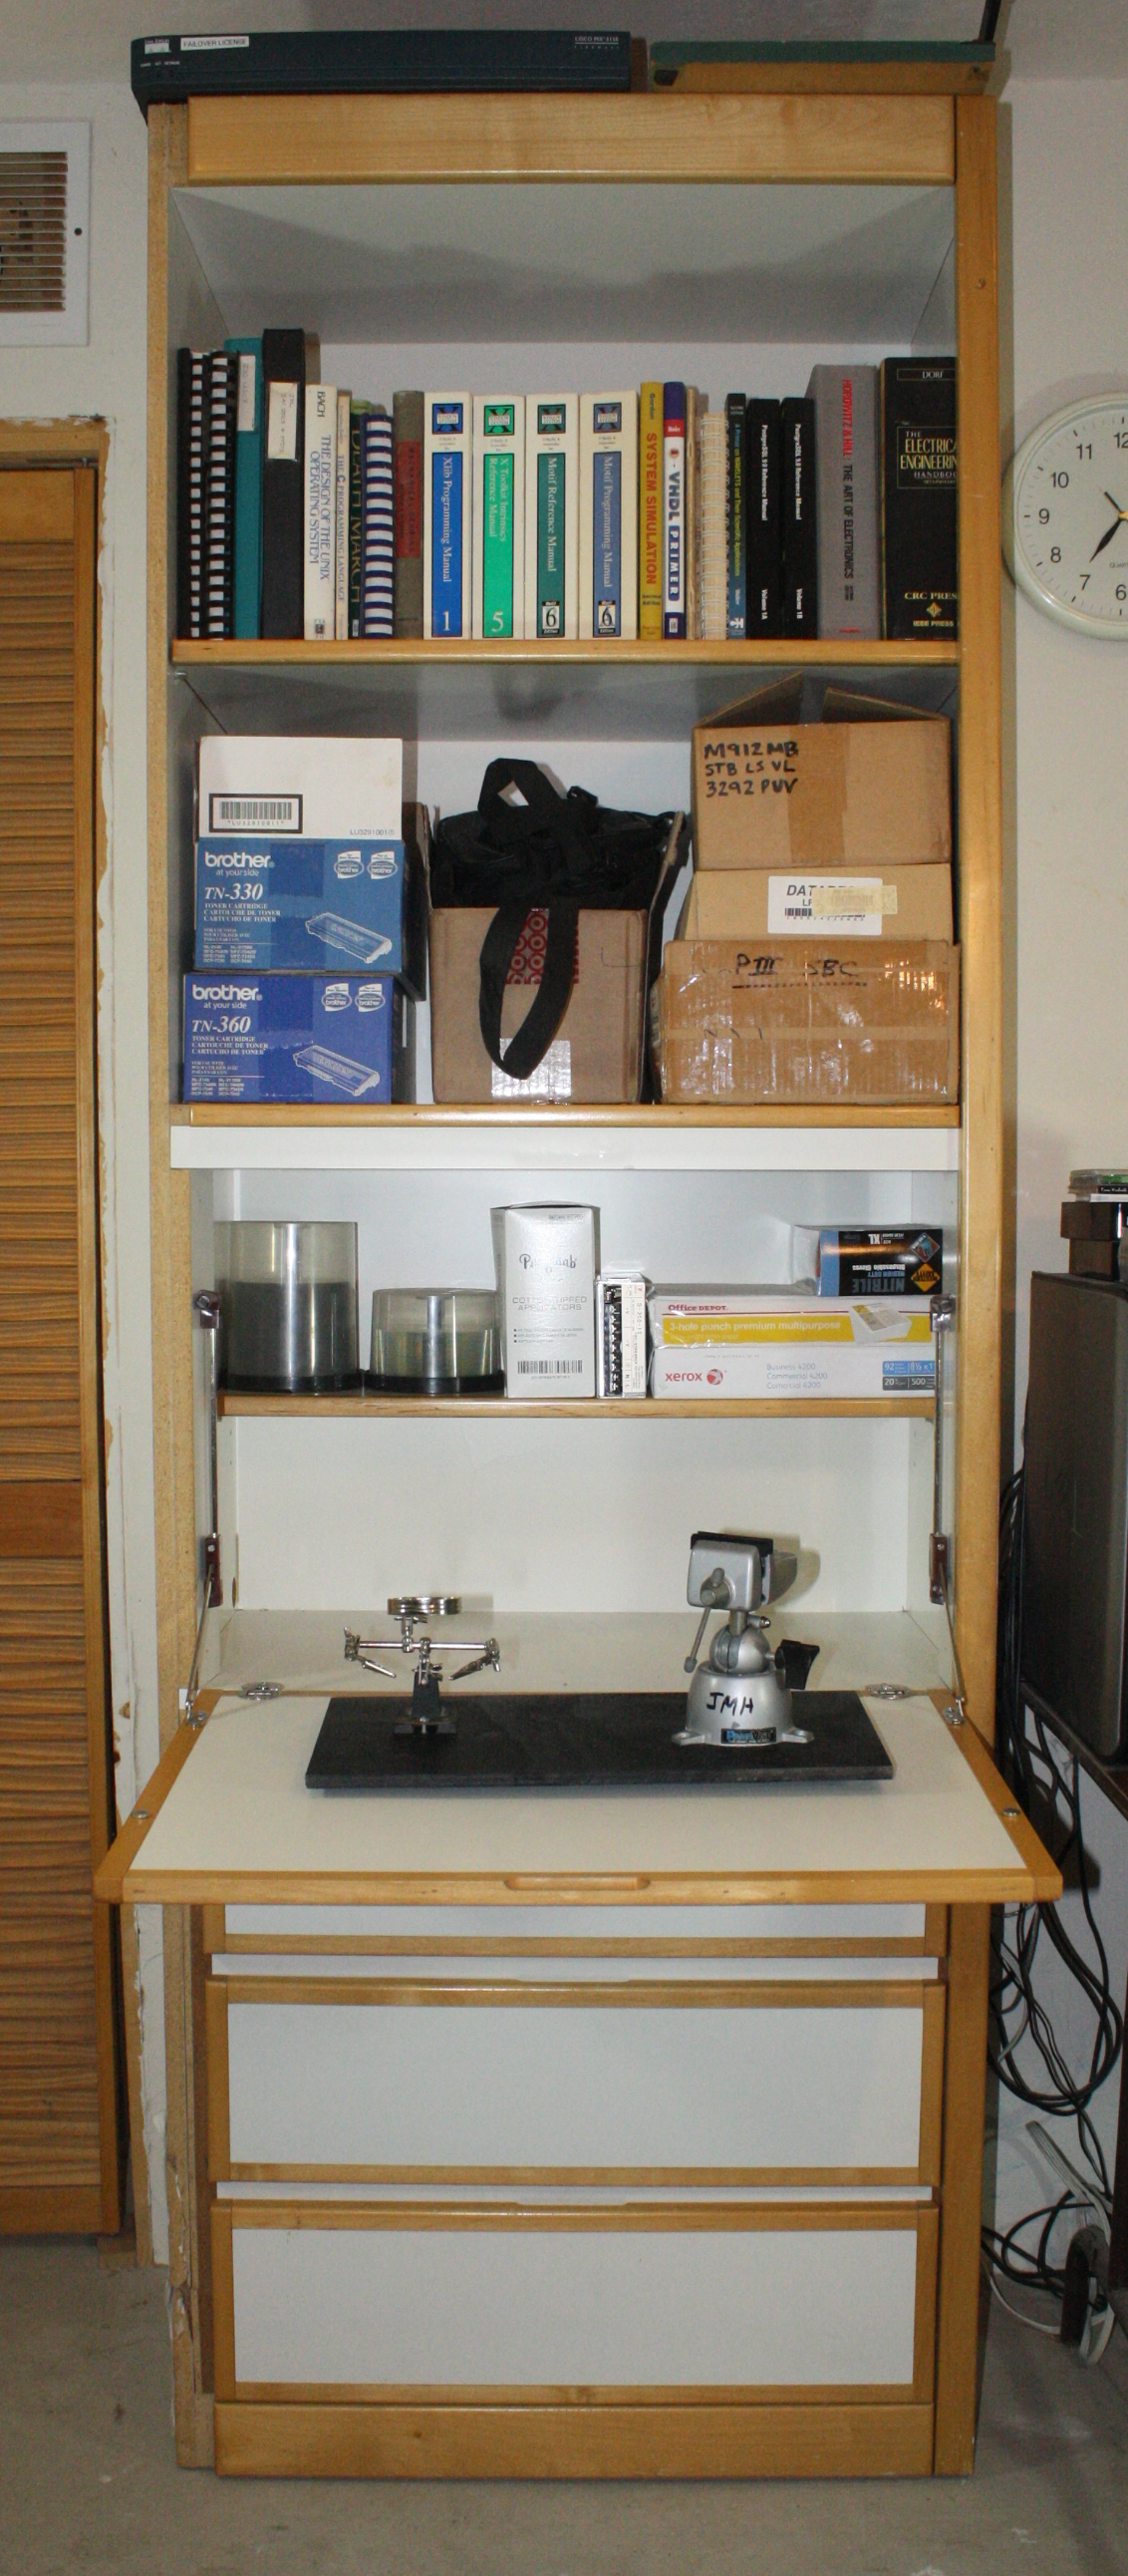 19 Tools You Need To Start Working With Electronics Oreilly Media Man Hand Holding A Magnifying Glass Above Circuit Board Combination Cabinet And Shelf Unit Fold Down Table Opened